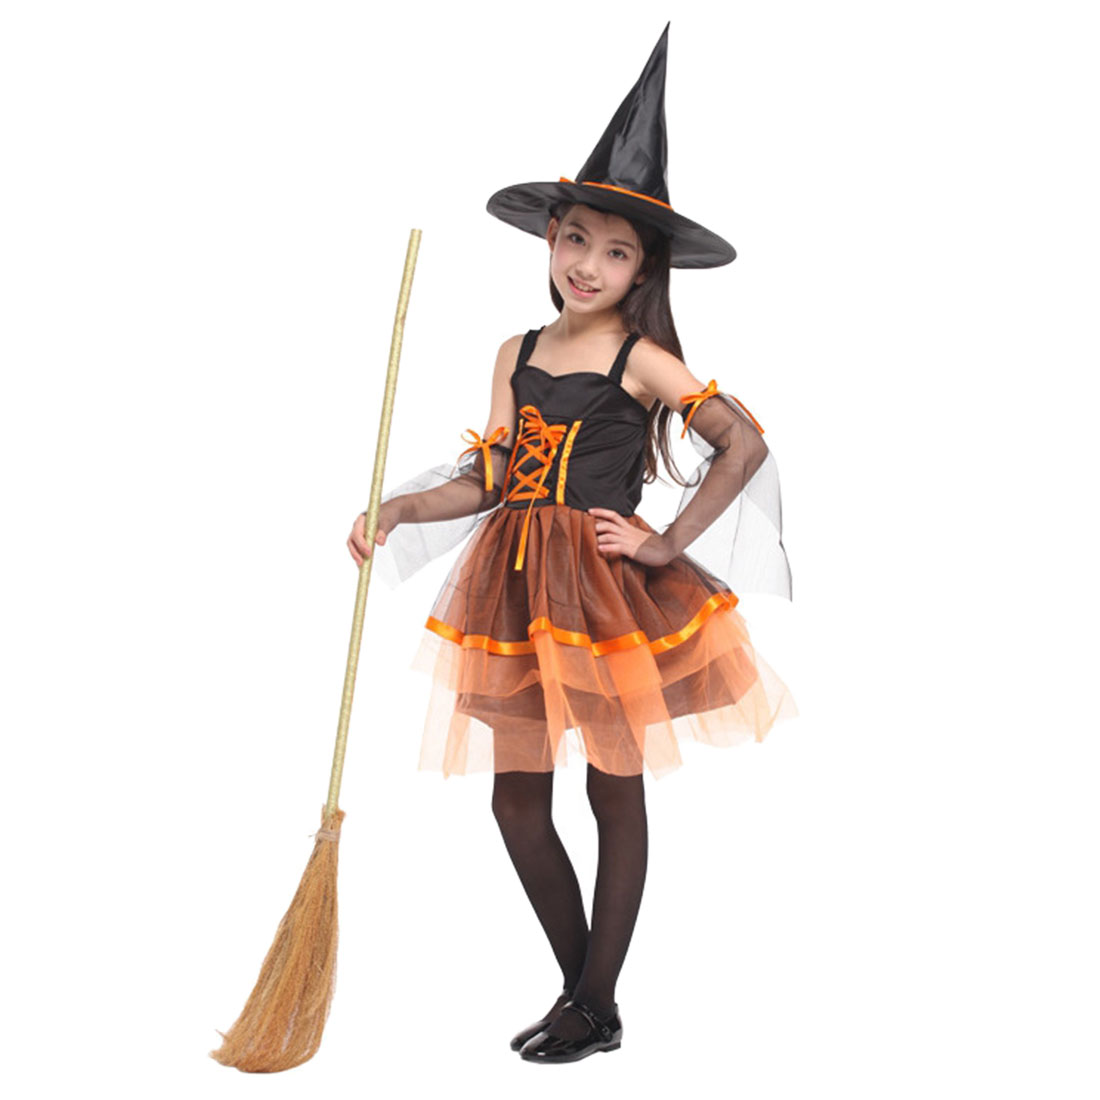 Children Kid's Party Halloween Witch Costume Cosplay Role Play One-piece Dress Cartoon Hats Set Without Broom- Orange + Black L